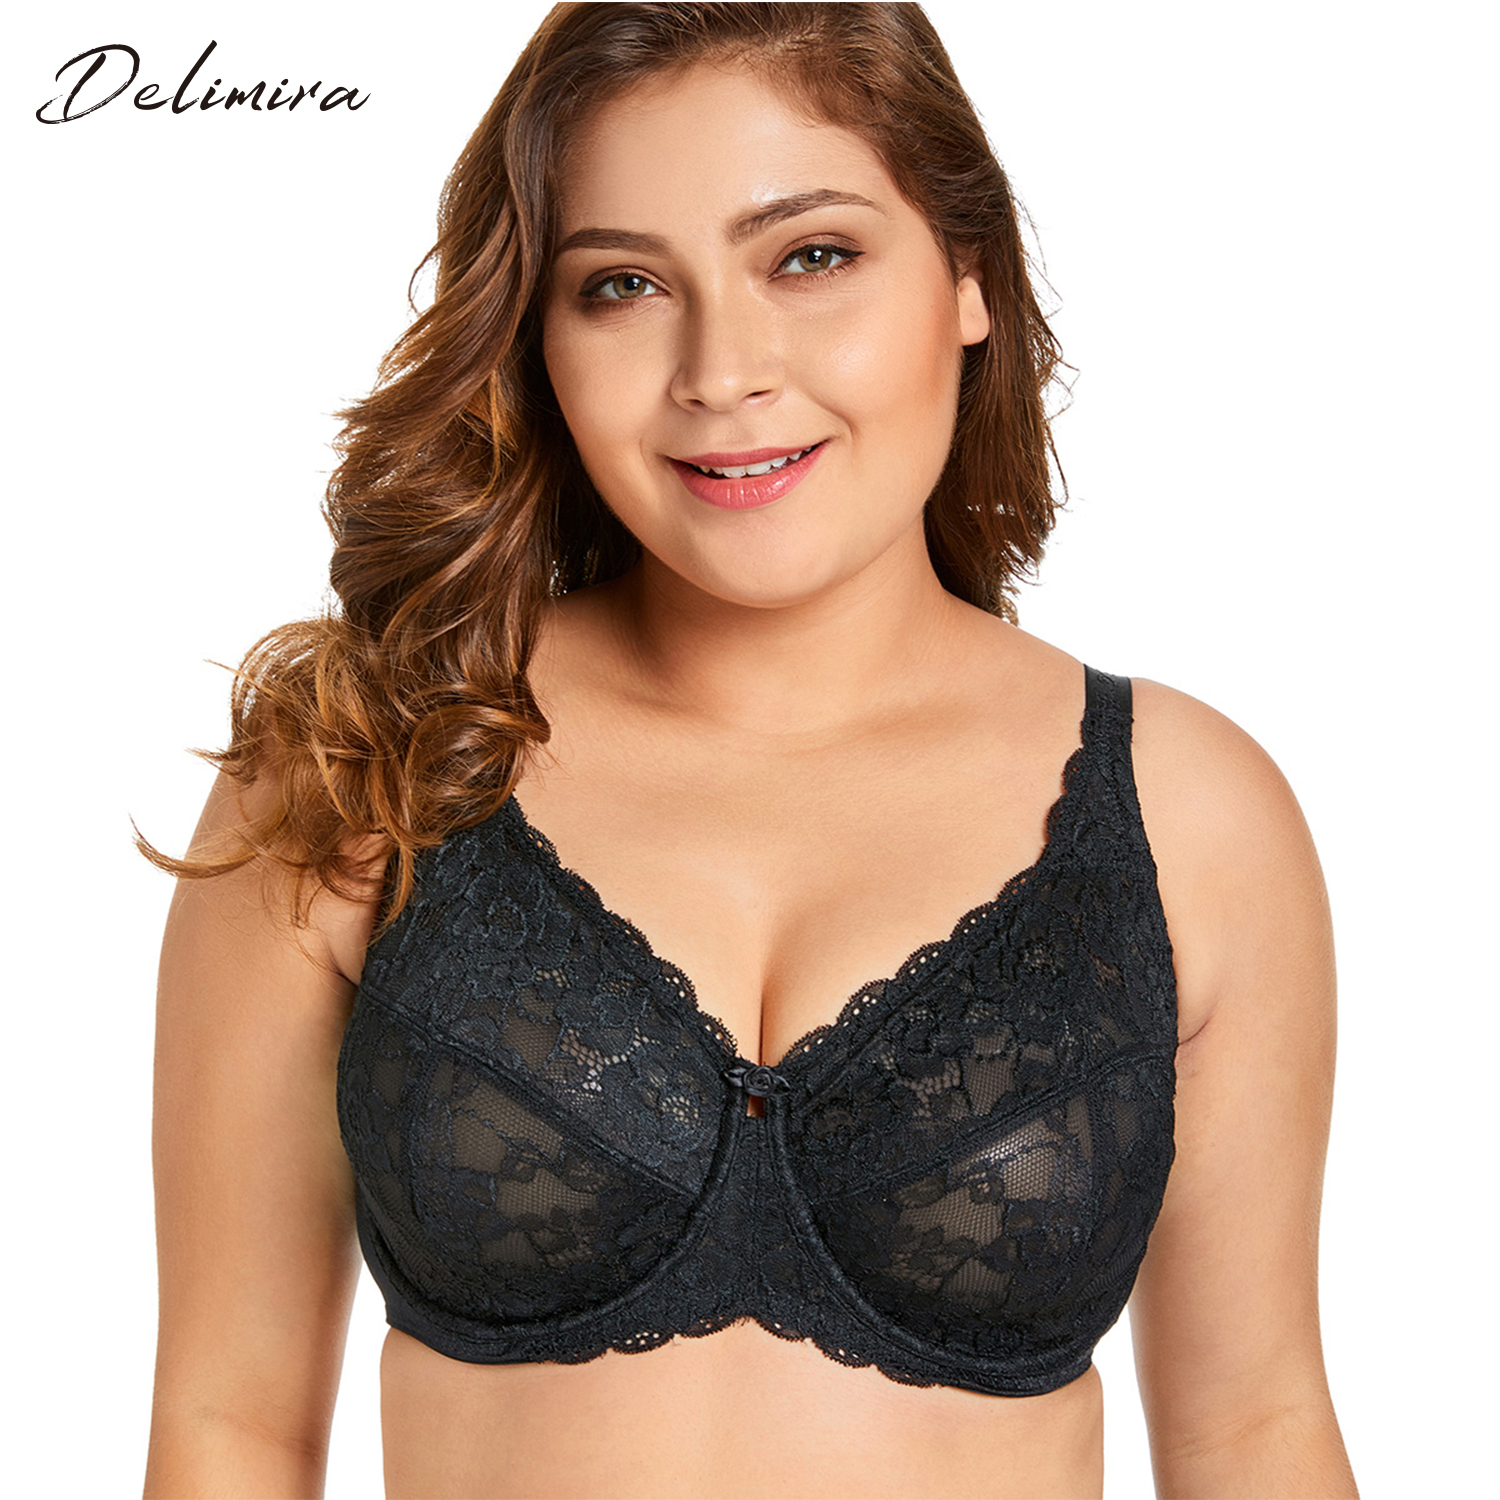 Delimira Womens Sheer Lace Full Figure Unlined Minimizer Bra ...